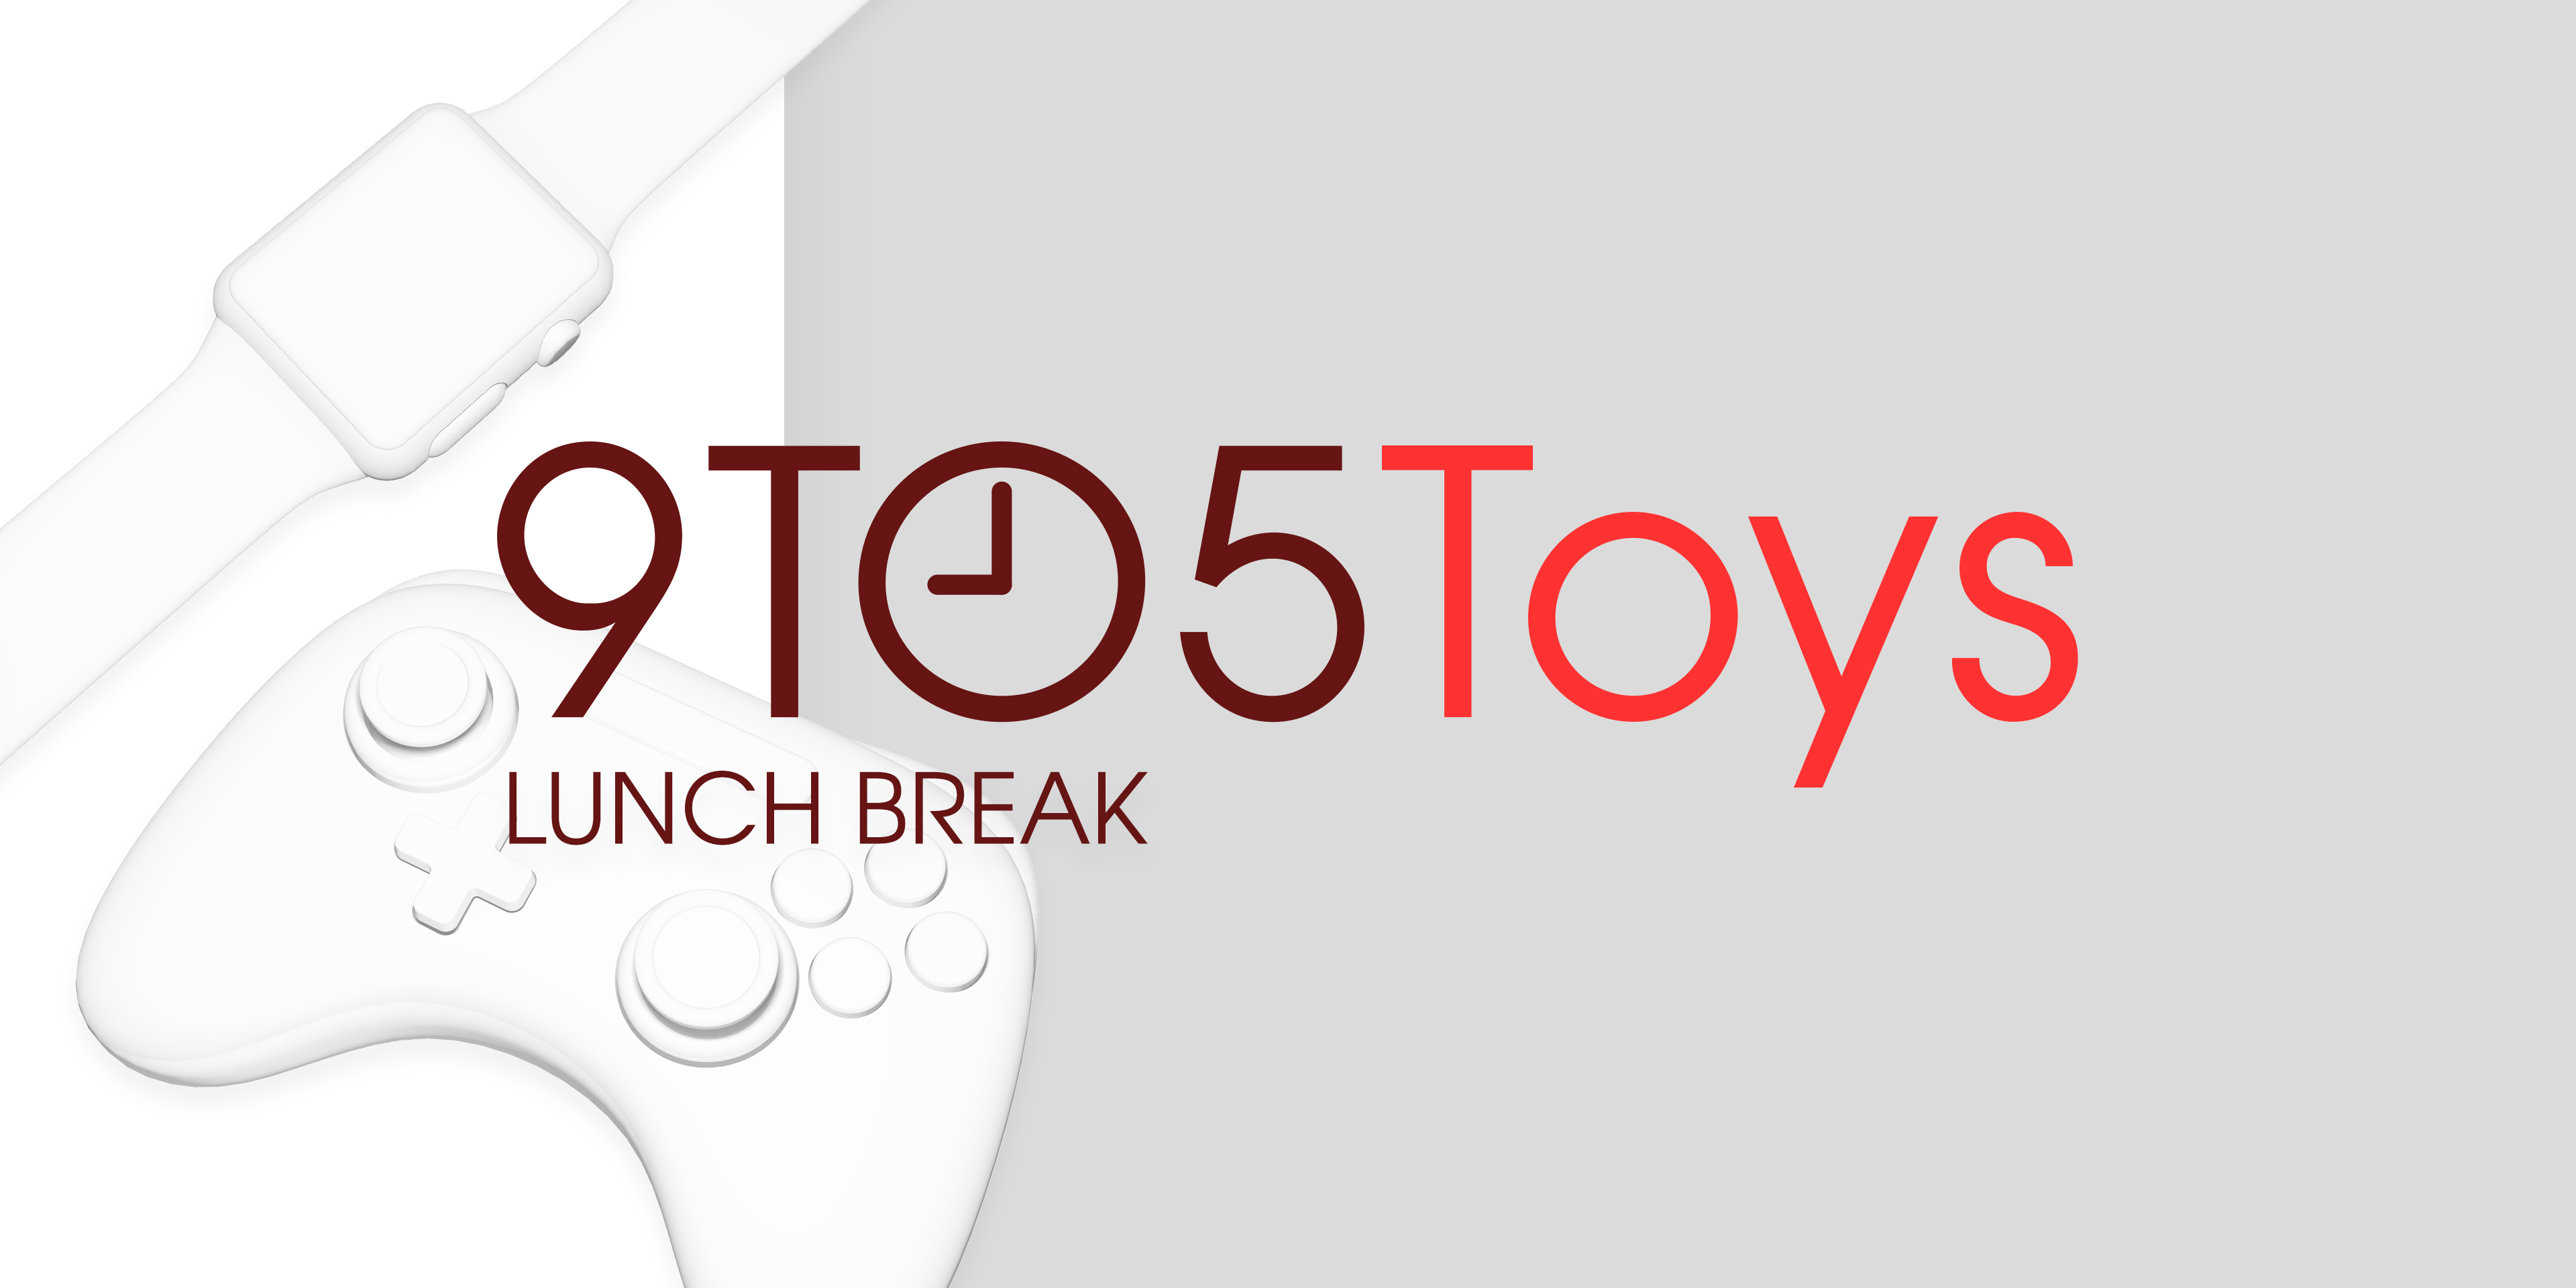 9to5toys lunch break jpg?quality=82&strip=all.'